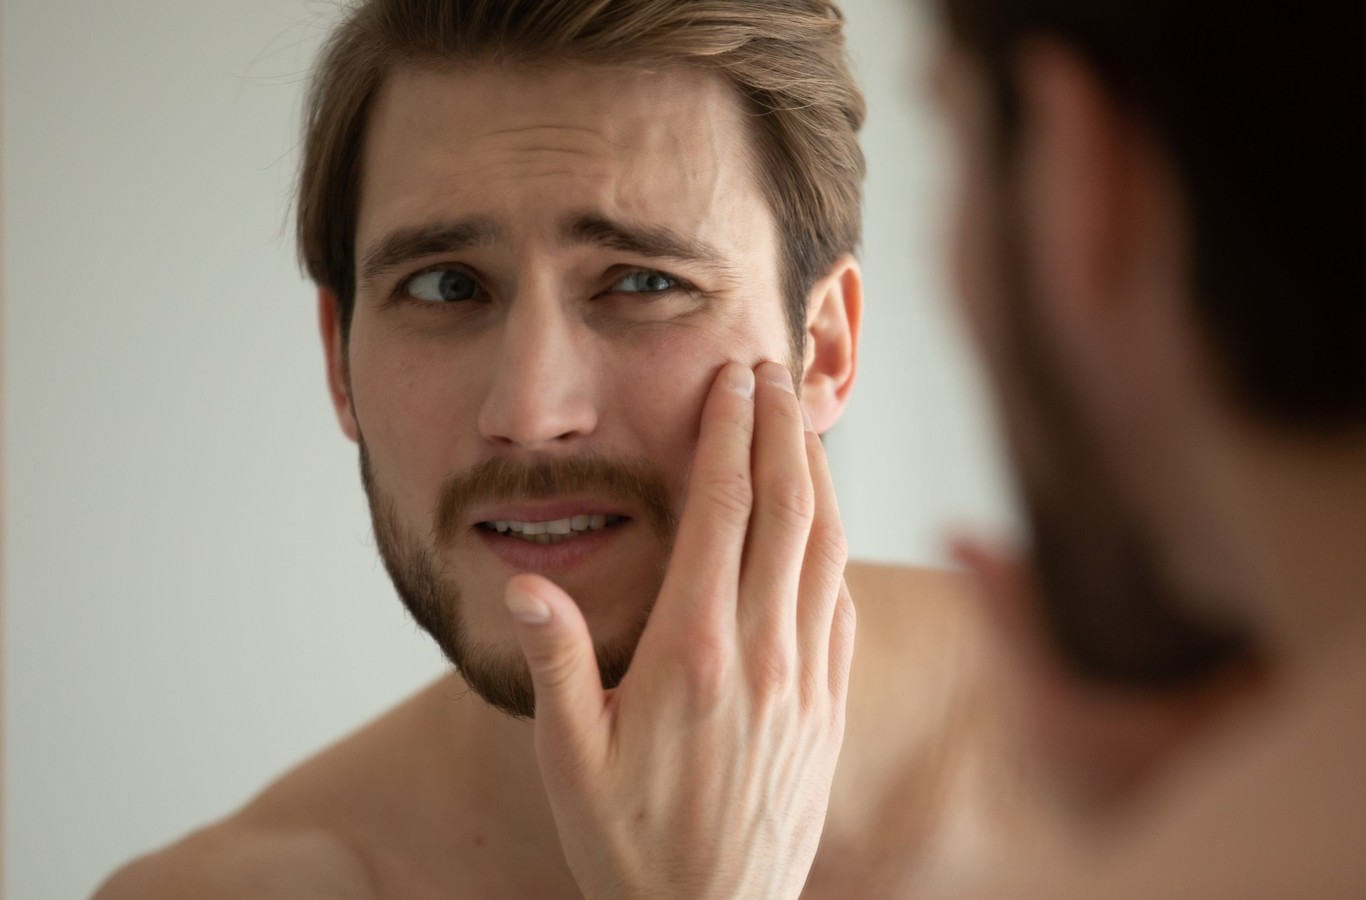 Close up head shot unhappy man looking in mirror, feeling stressed of sensitive skin